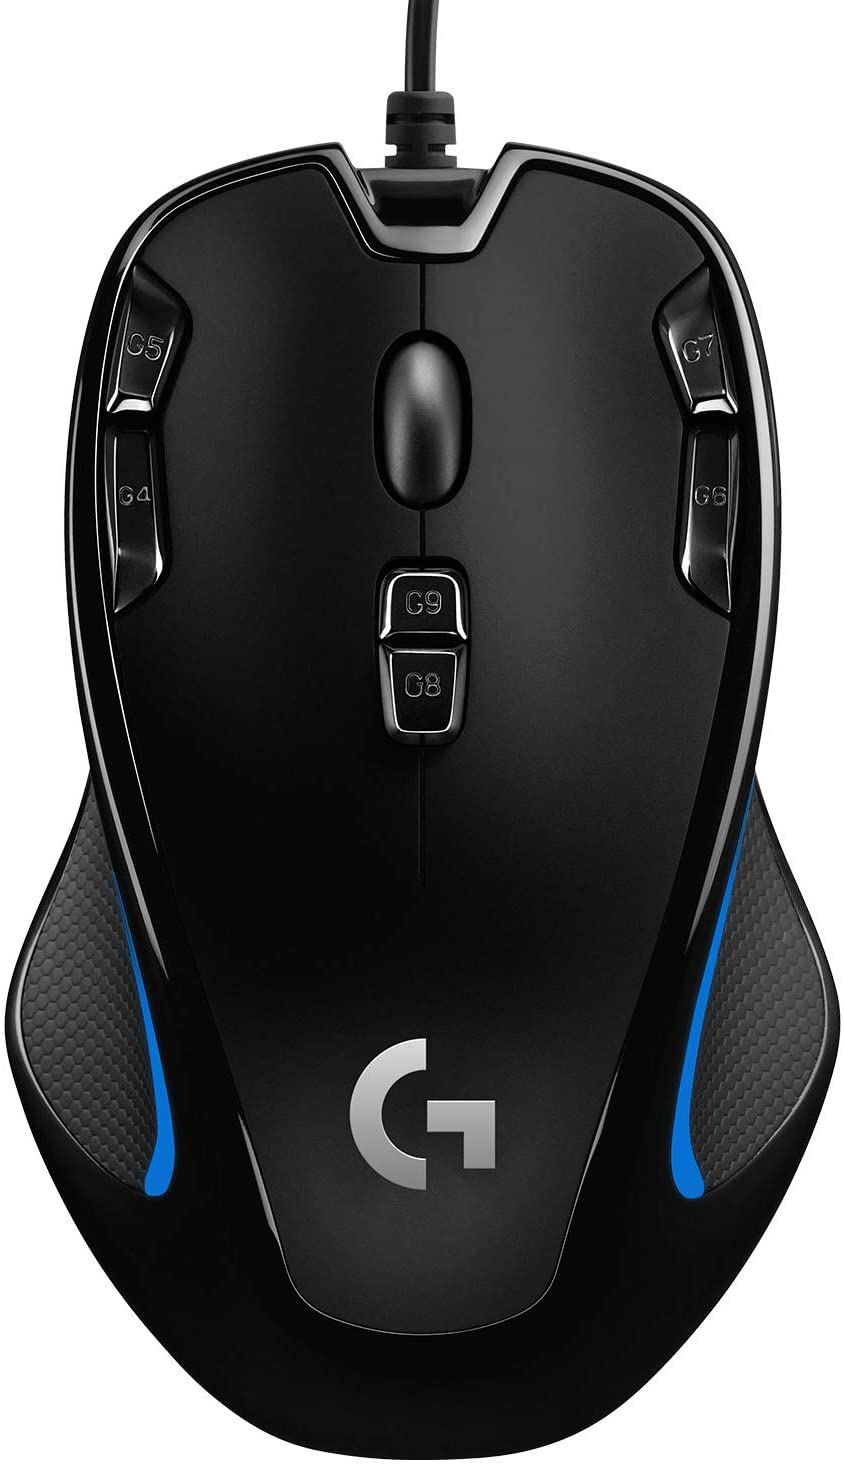 Top 10 Best Lightest Gaming Mouse - 2021 Buying Guide 8